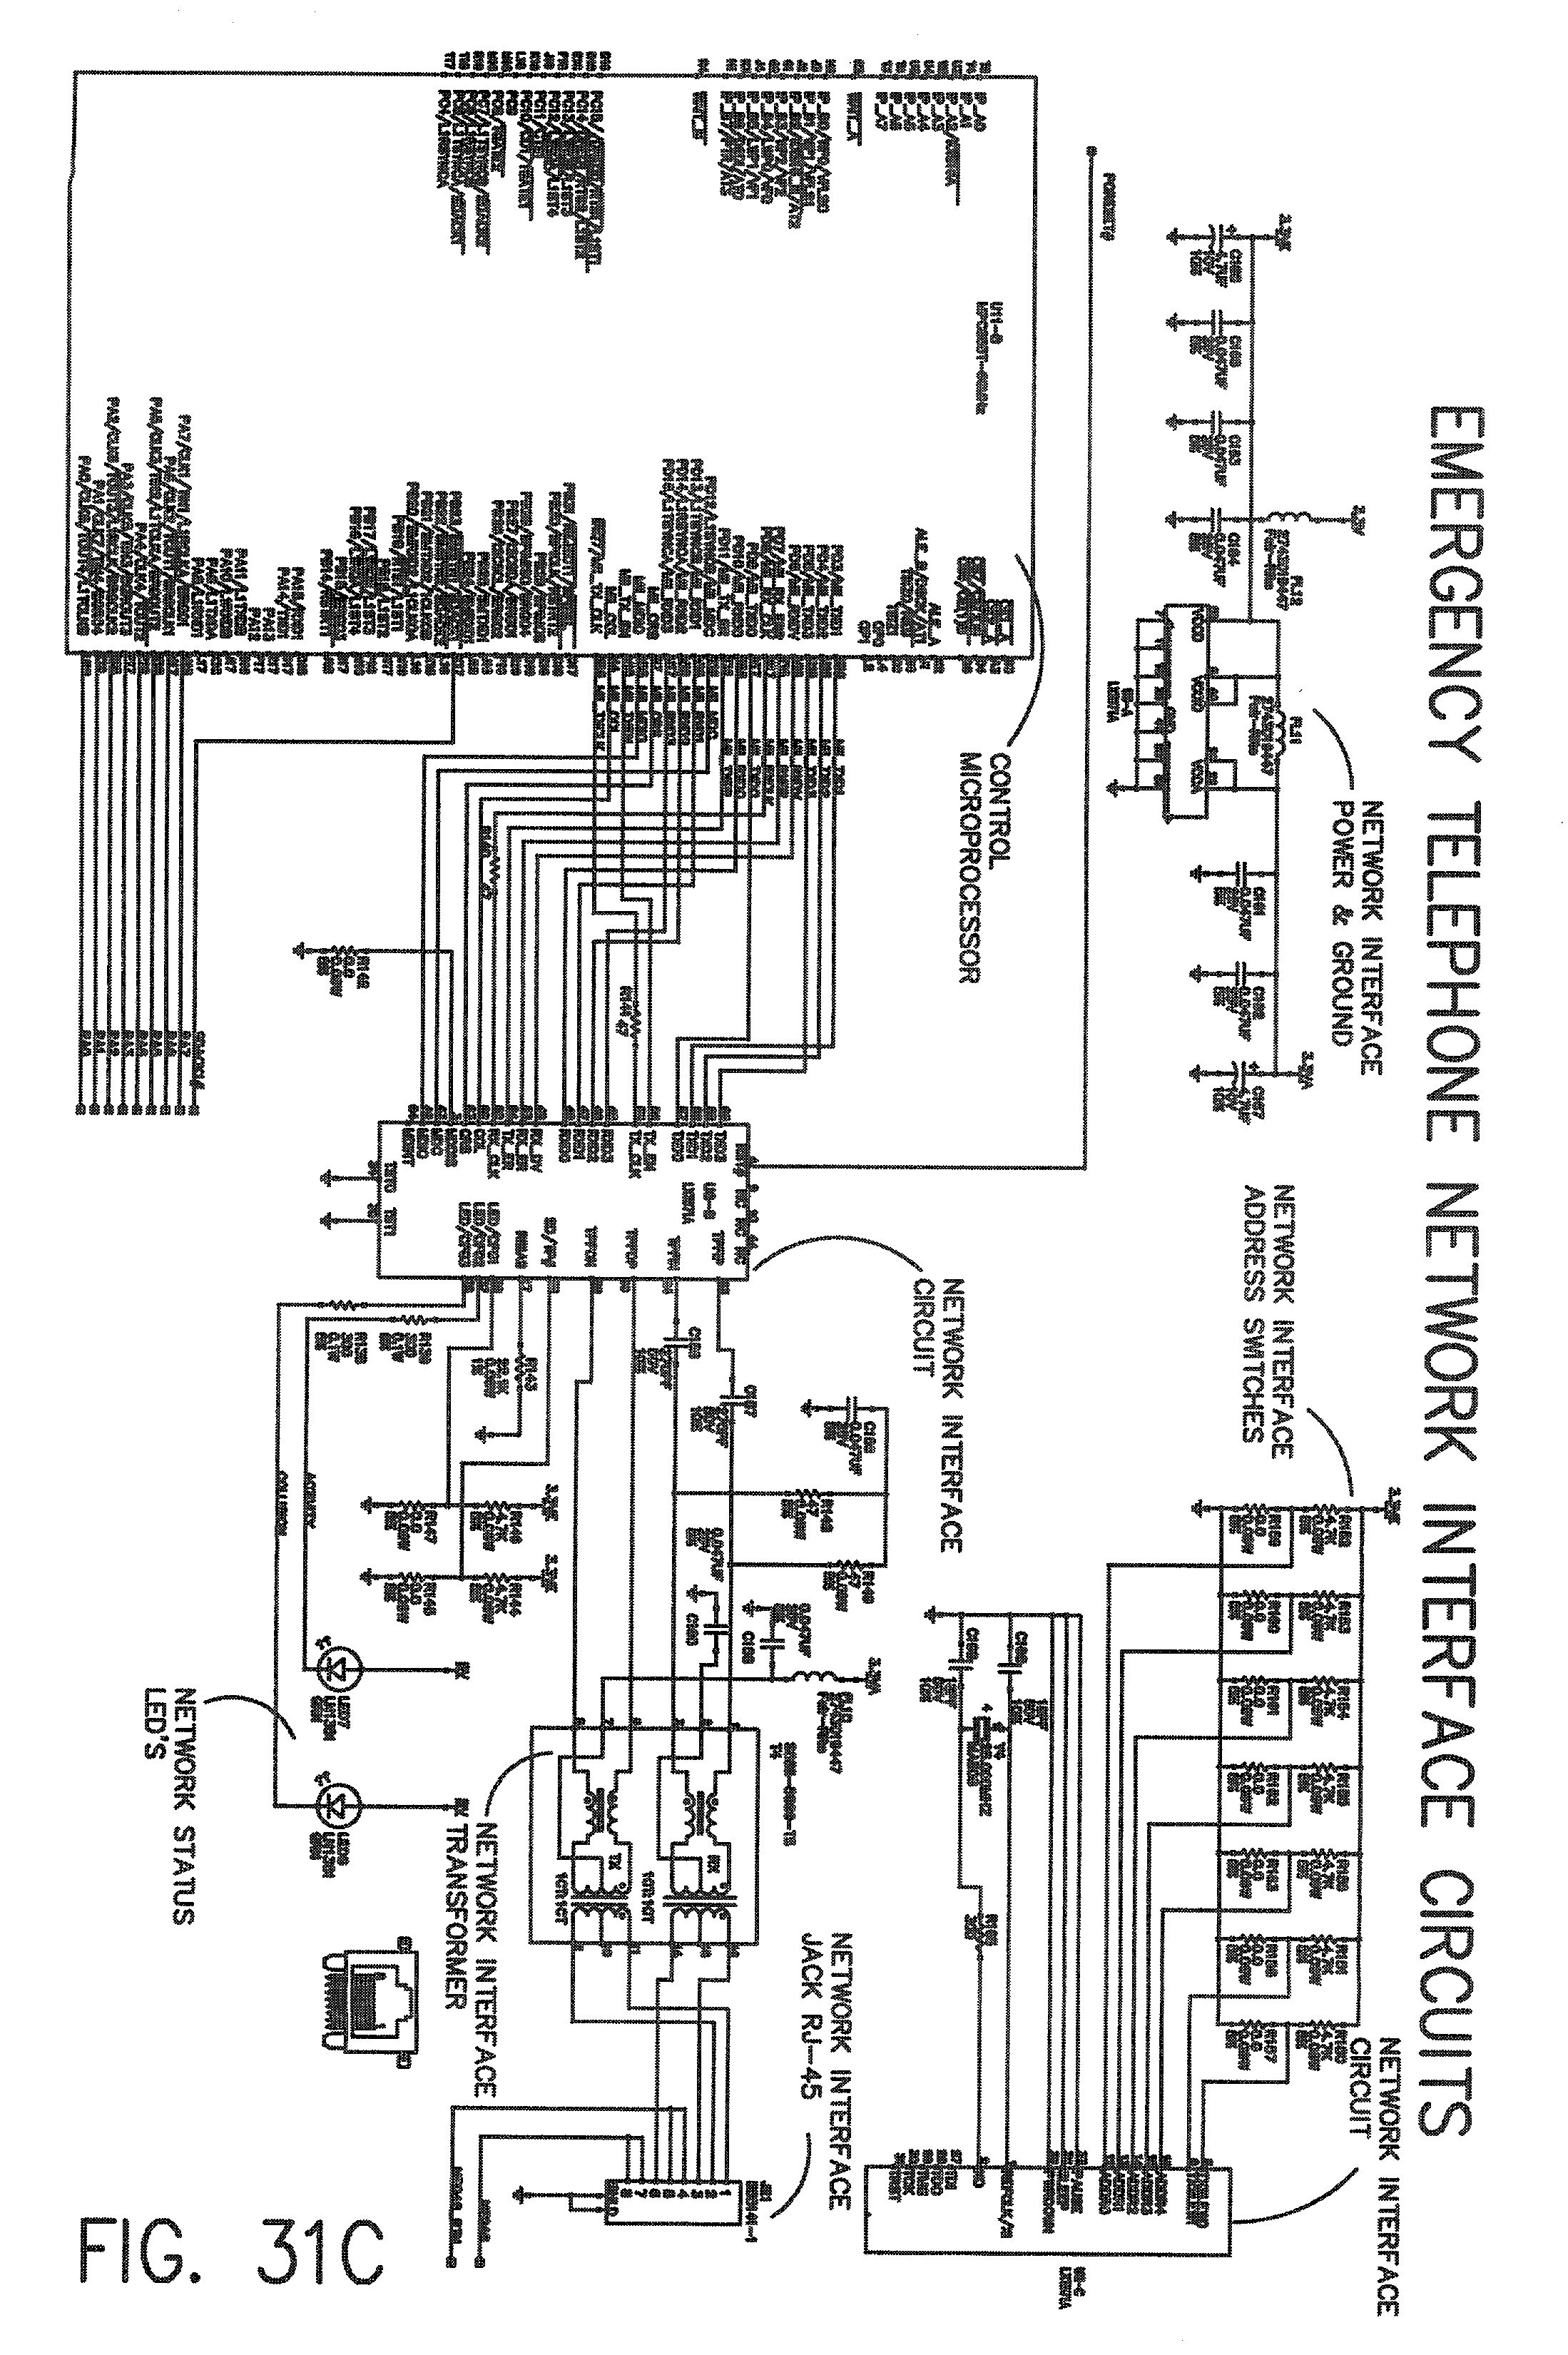 Patent Us 7428002 B2 Glossary Of Electronic And Engineering Terms Gray Code Circuit Images